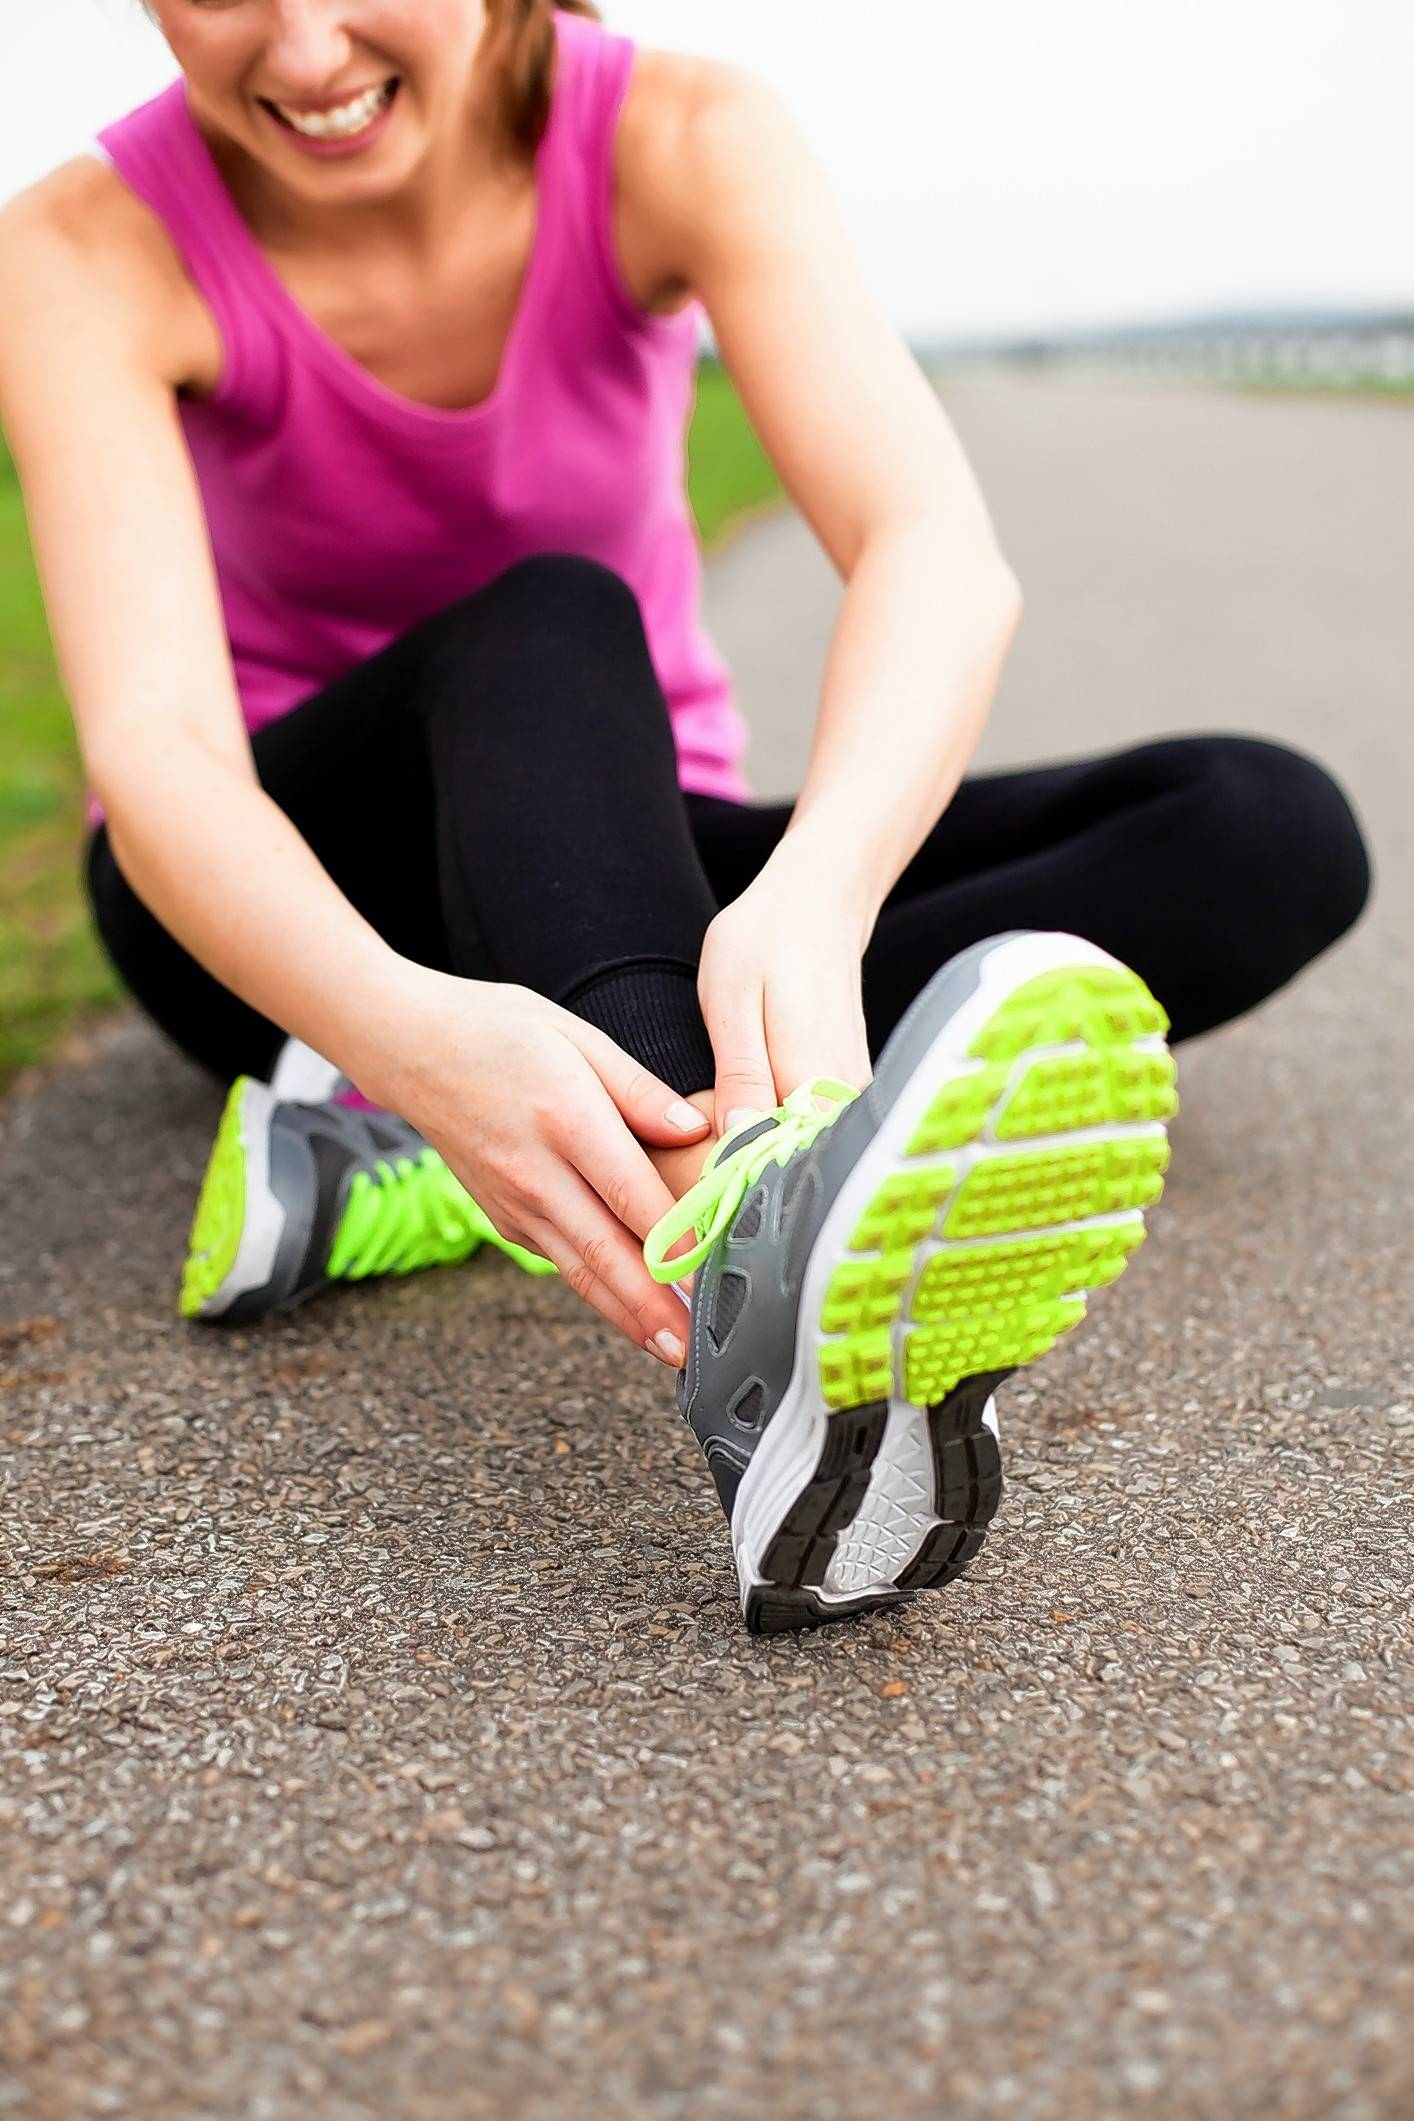 Female runners with a low BMI appear to be more prone to stress fractures, a new study says.